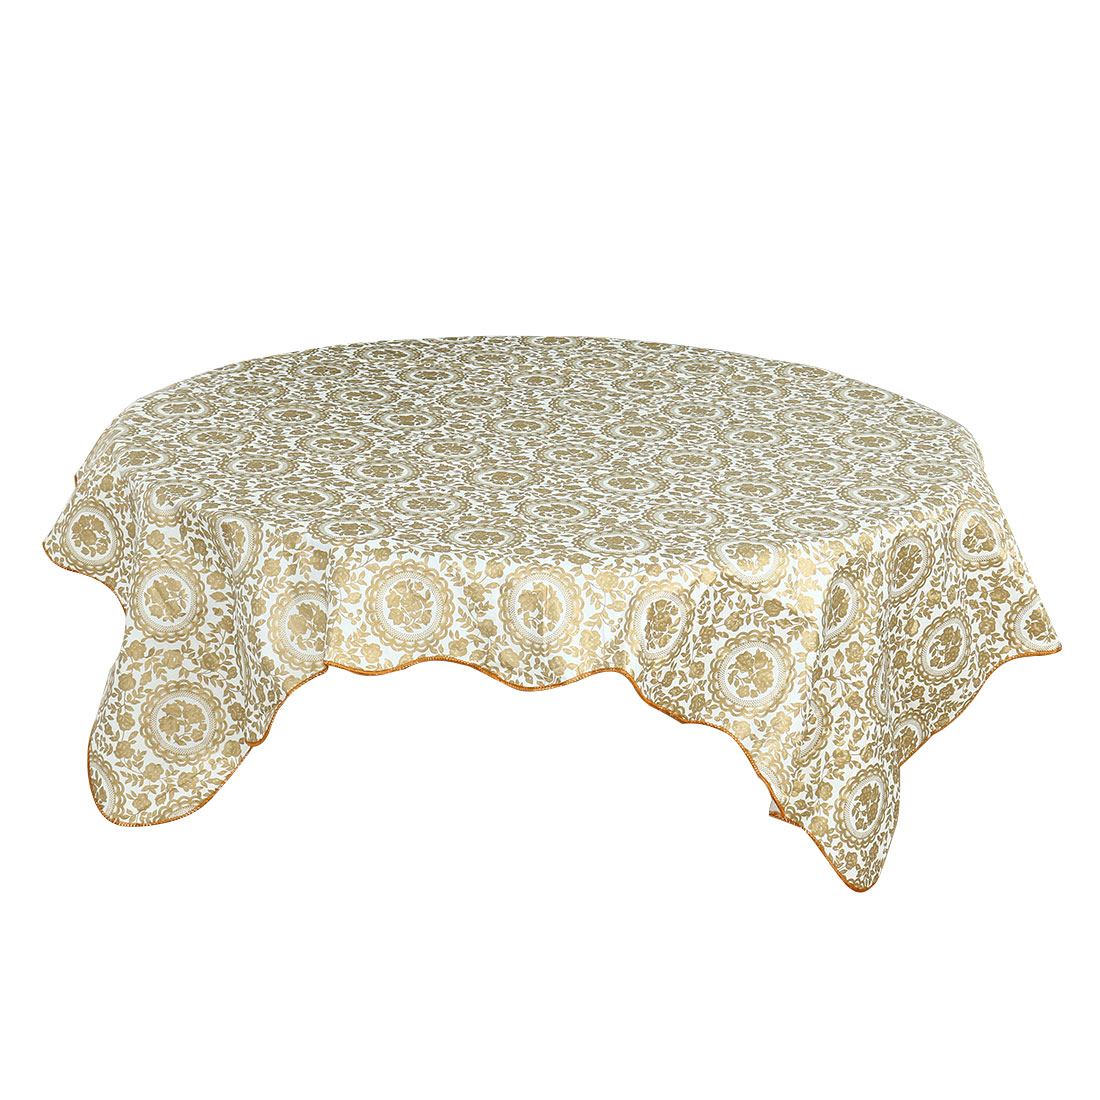 Home Turntable Flower Pattern Round Water Resistant Tablecloth Table Protector Cloth Cover Gold Tone